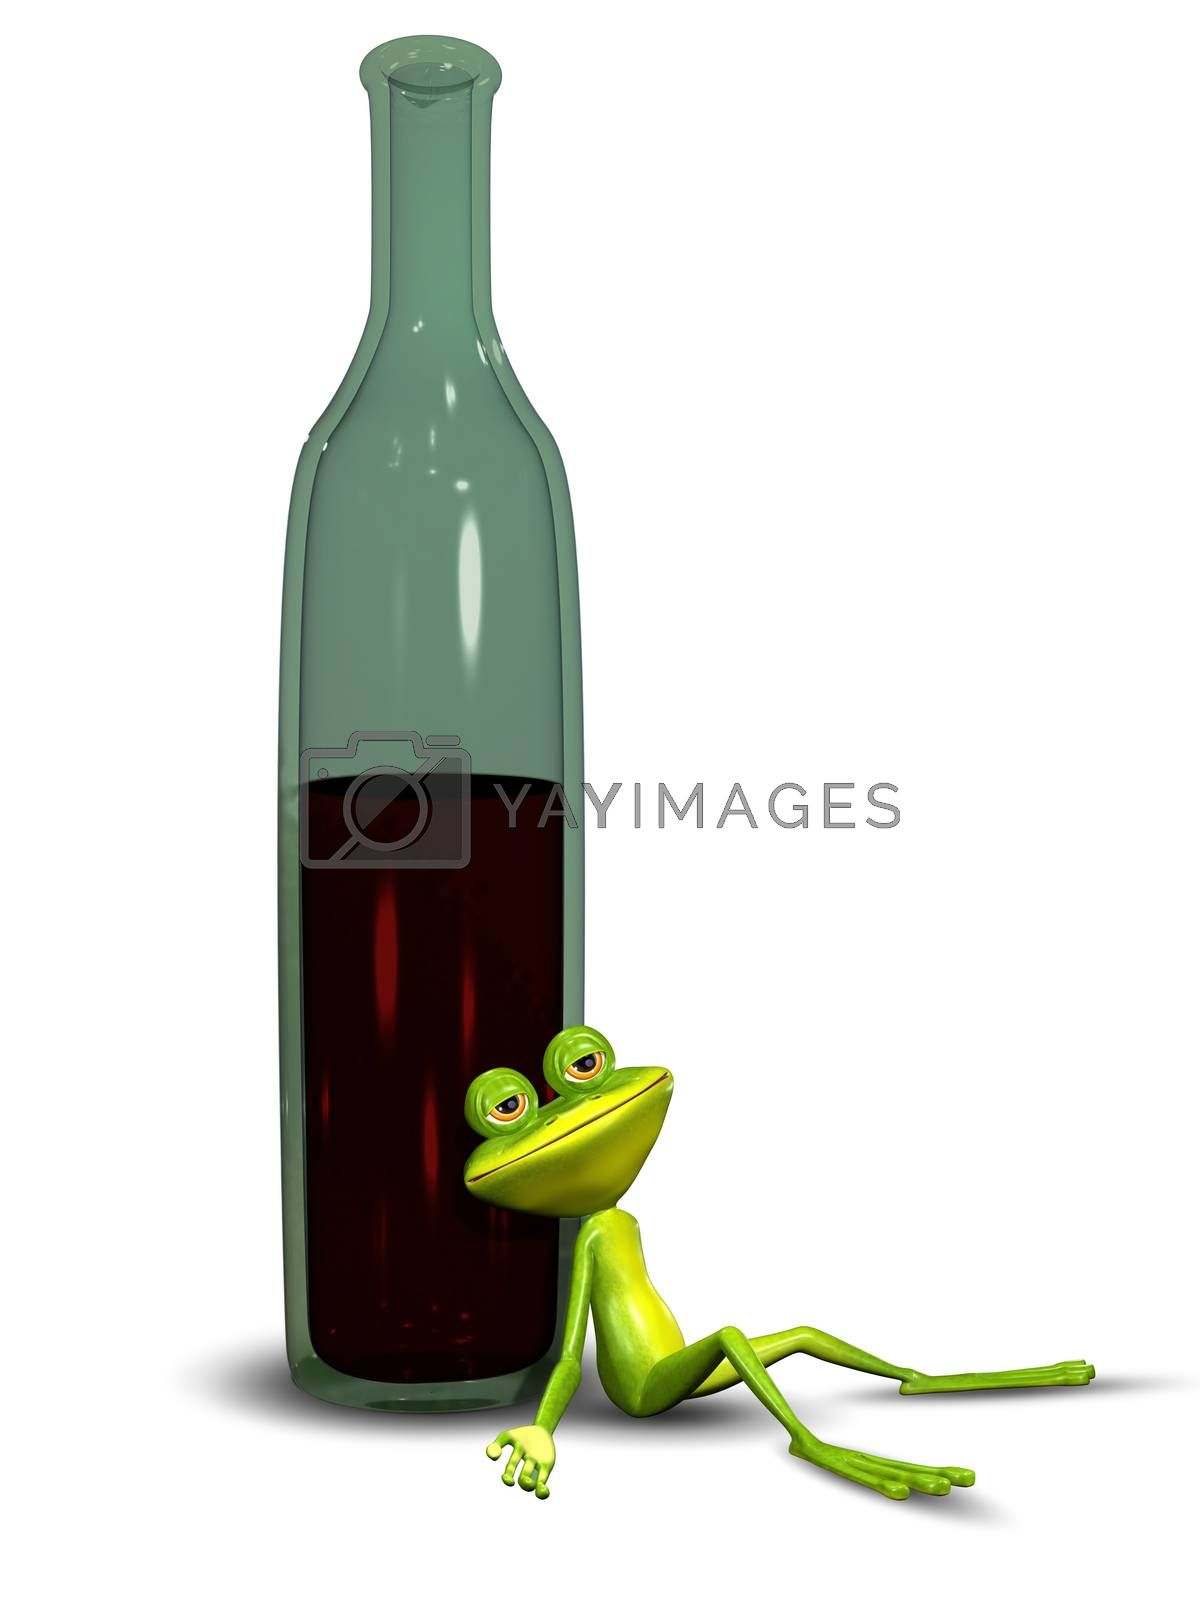 3D Illustration of a Frog Sitting Drunk in Bottles